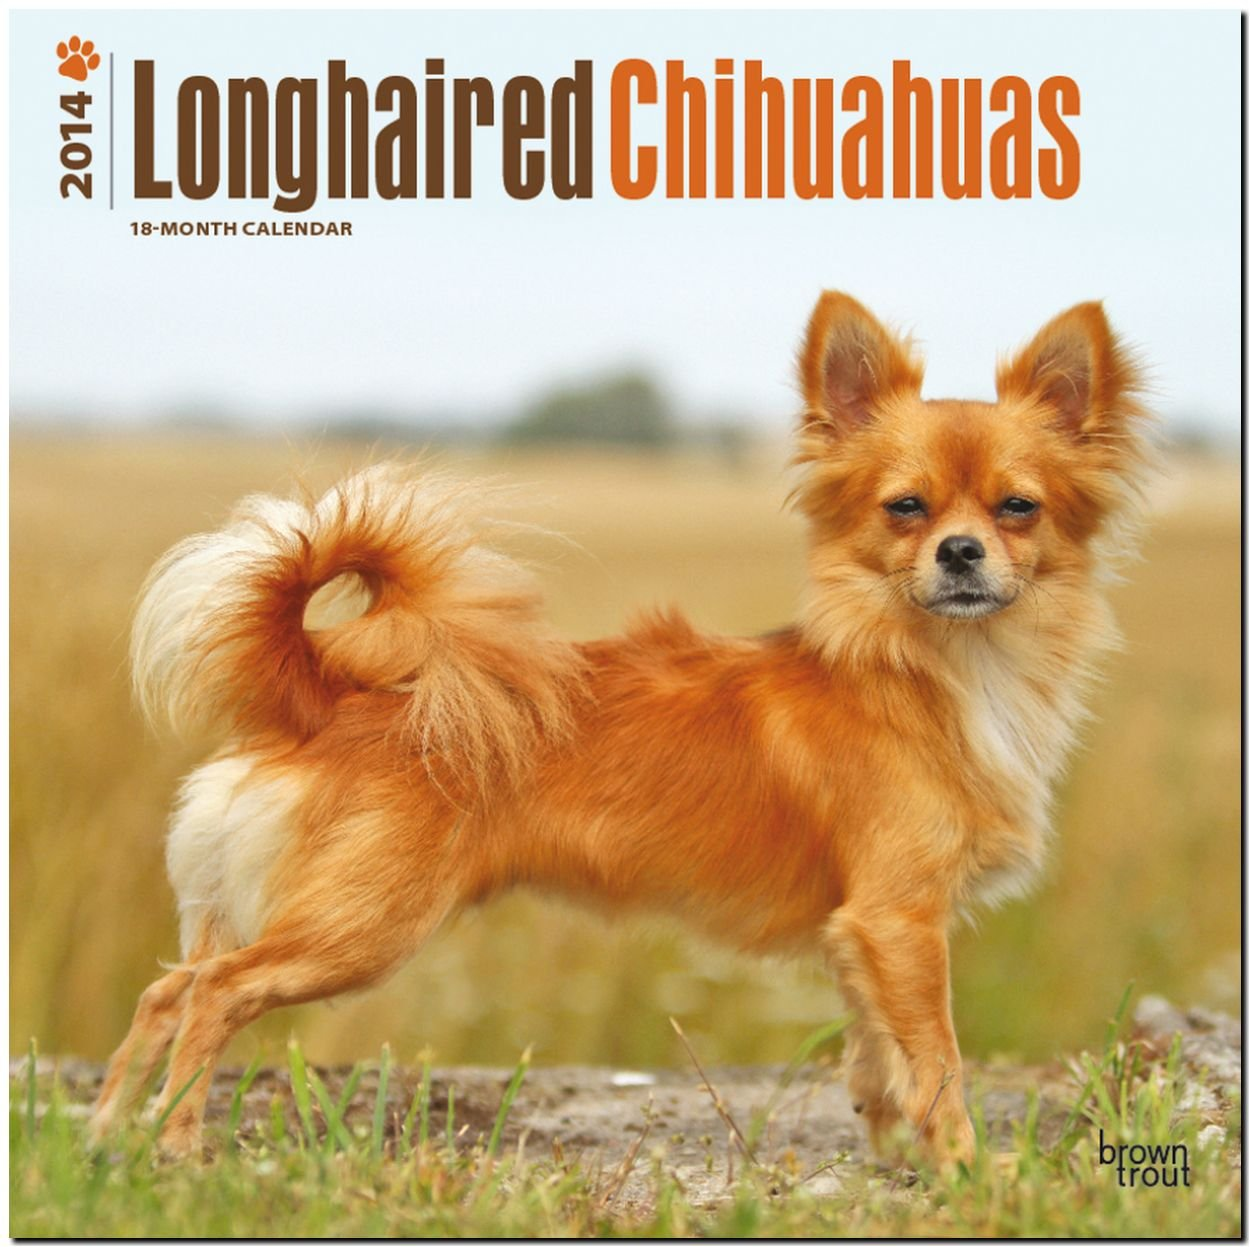 Longhaired Chihuahuas 2014 Calendar, 18-Month Calendar (Multilingual Edition) pdf